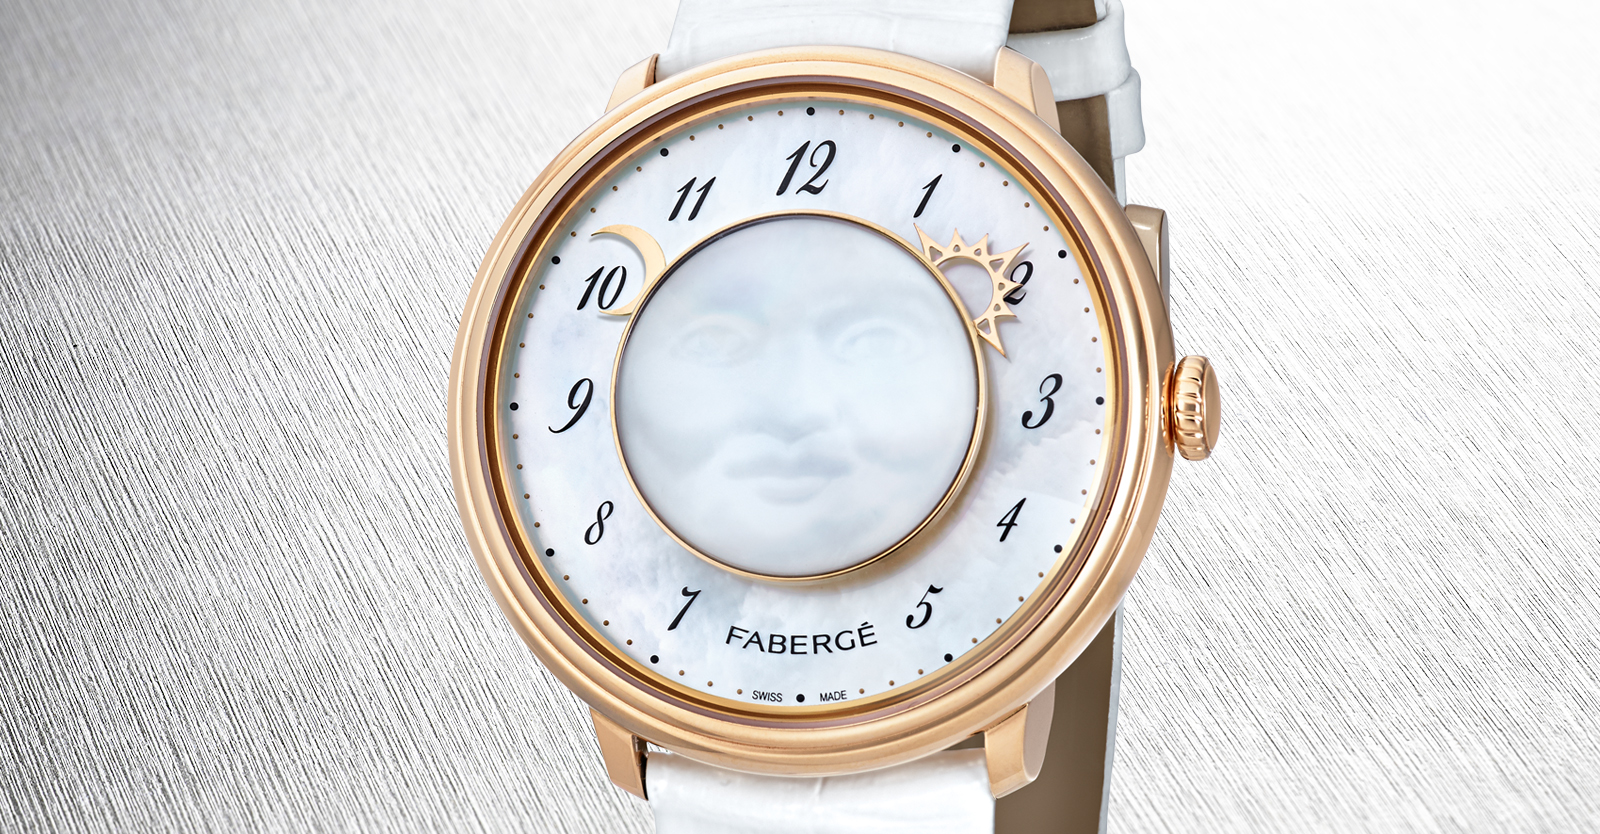 Fabergé Lady Levity Timepiece from the Fabergé Dalliance Collection.